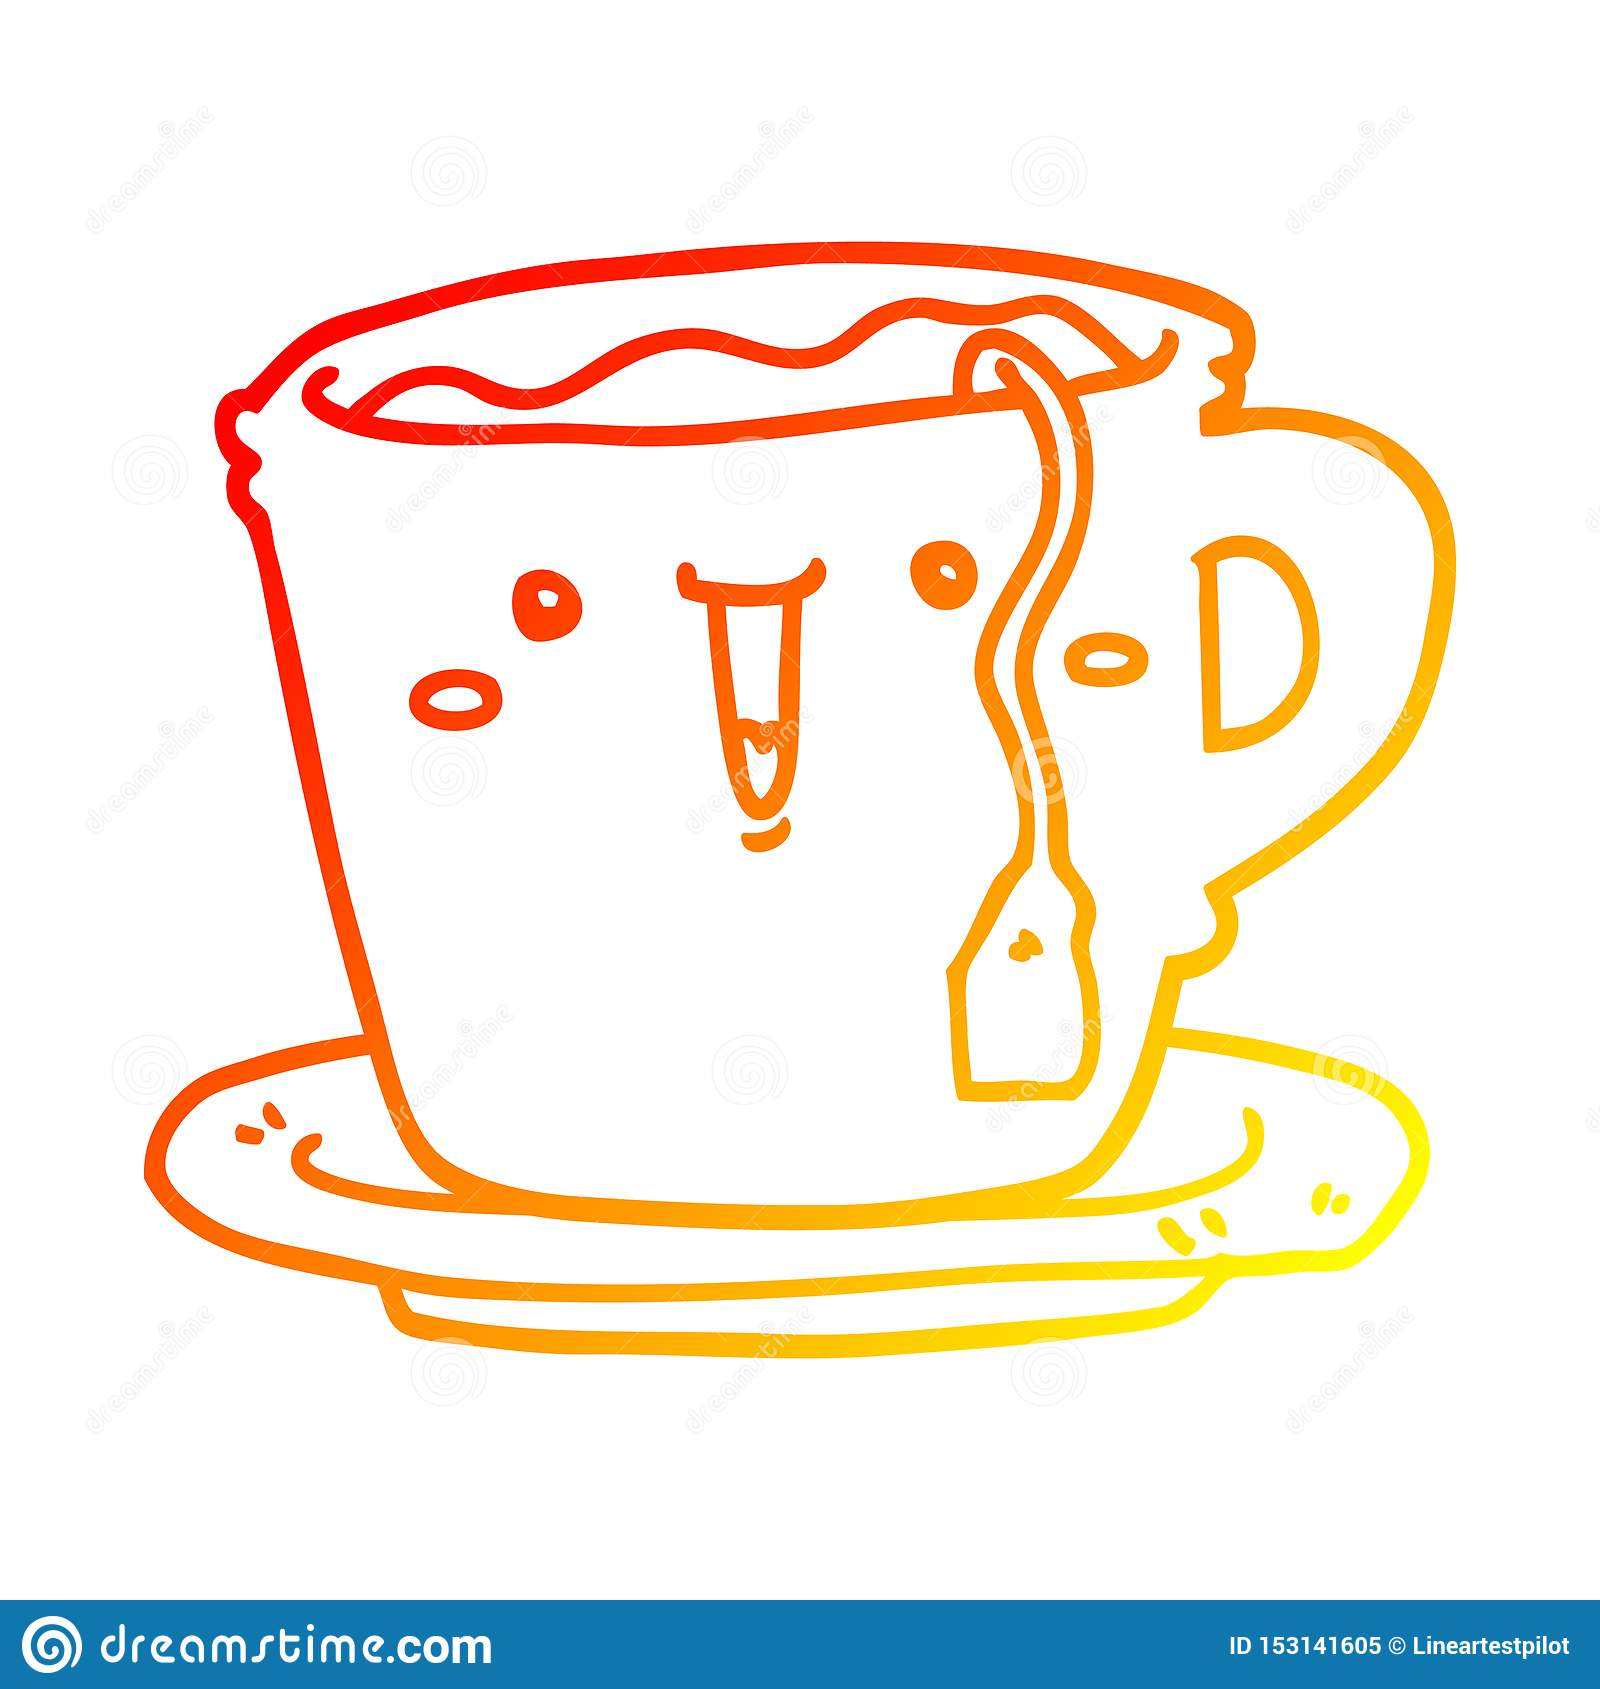 Cute Cartoon Warm Line Gradient Spectrum Drawing Illustration Retro Doodle Freehand Free Hand Drawn Quirky Art Artwork Funny Character Cup Saucer Tea Coffee Face Stock Illustrations 2 Cute Cartoon Warm Line